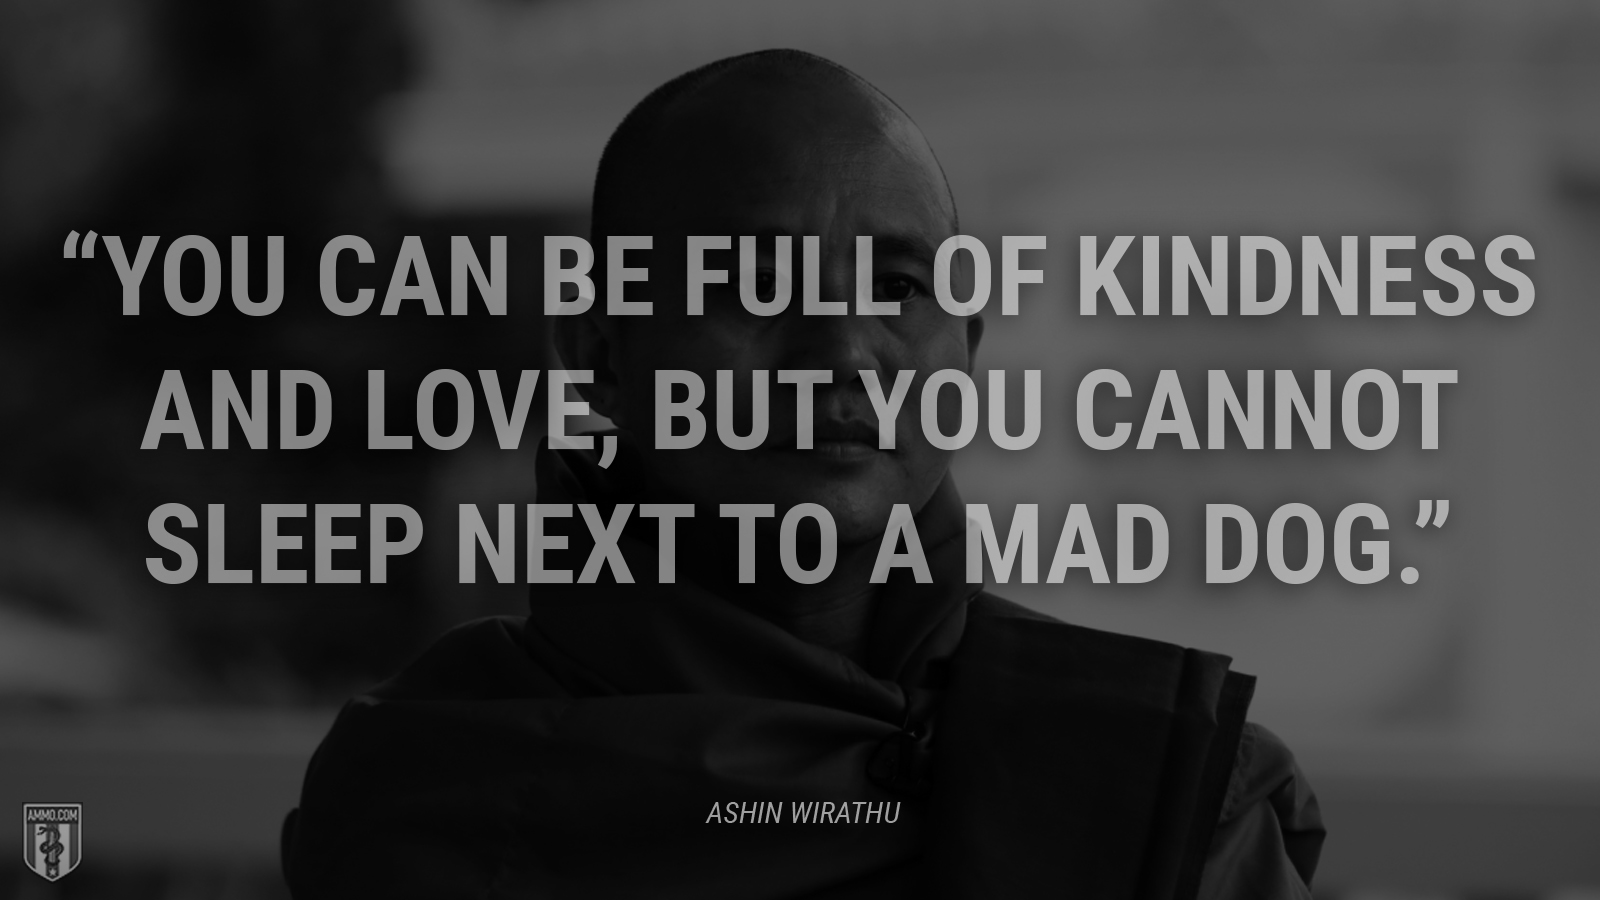 """You can be full of kindness and love, but you cannot sleep next to a mad dog."" - Ashin Wirathu"